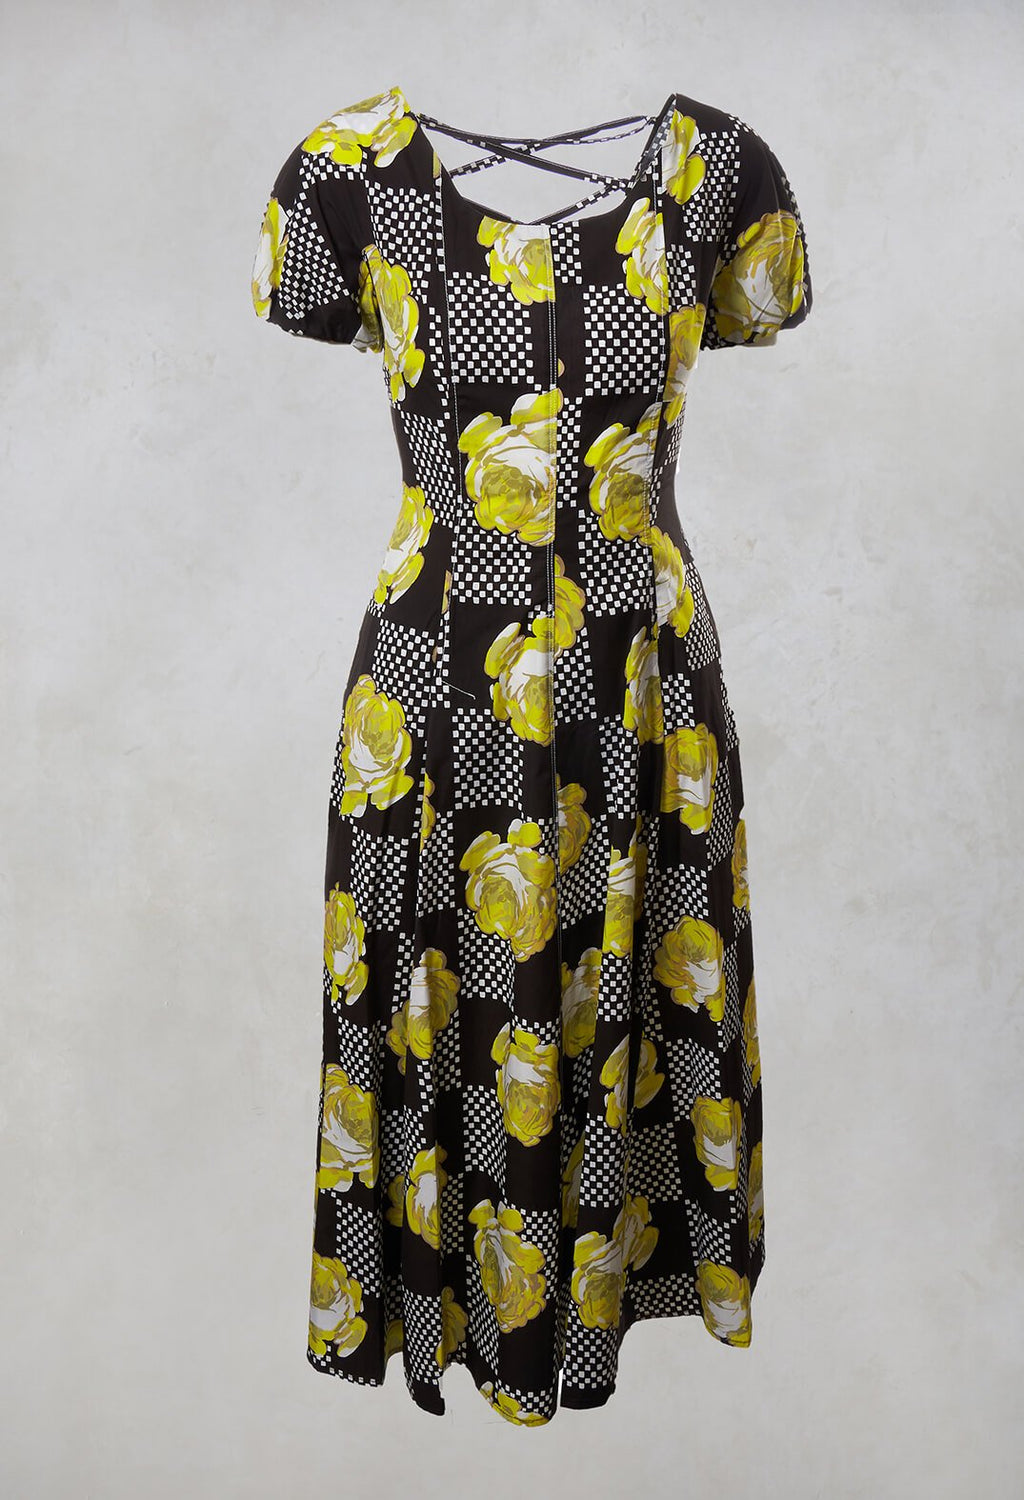 A-Line Dress in Yellow